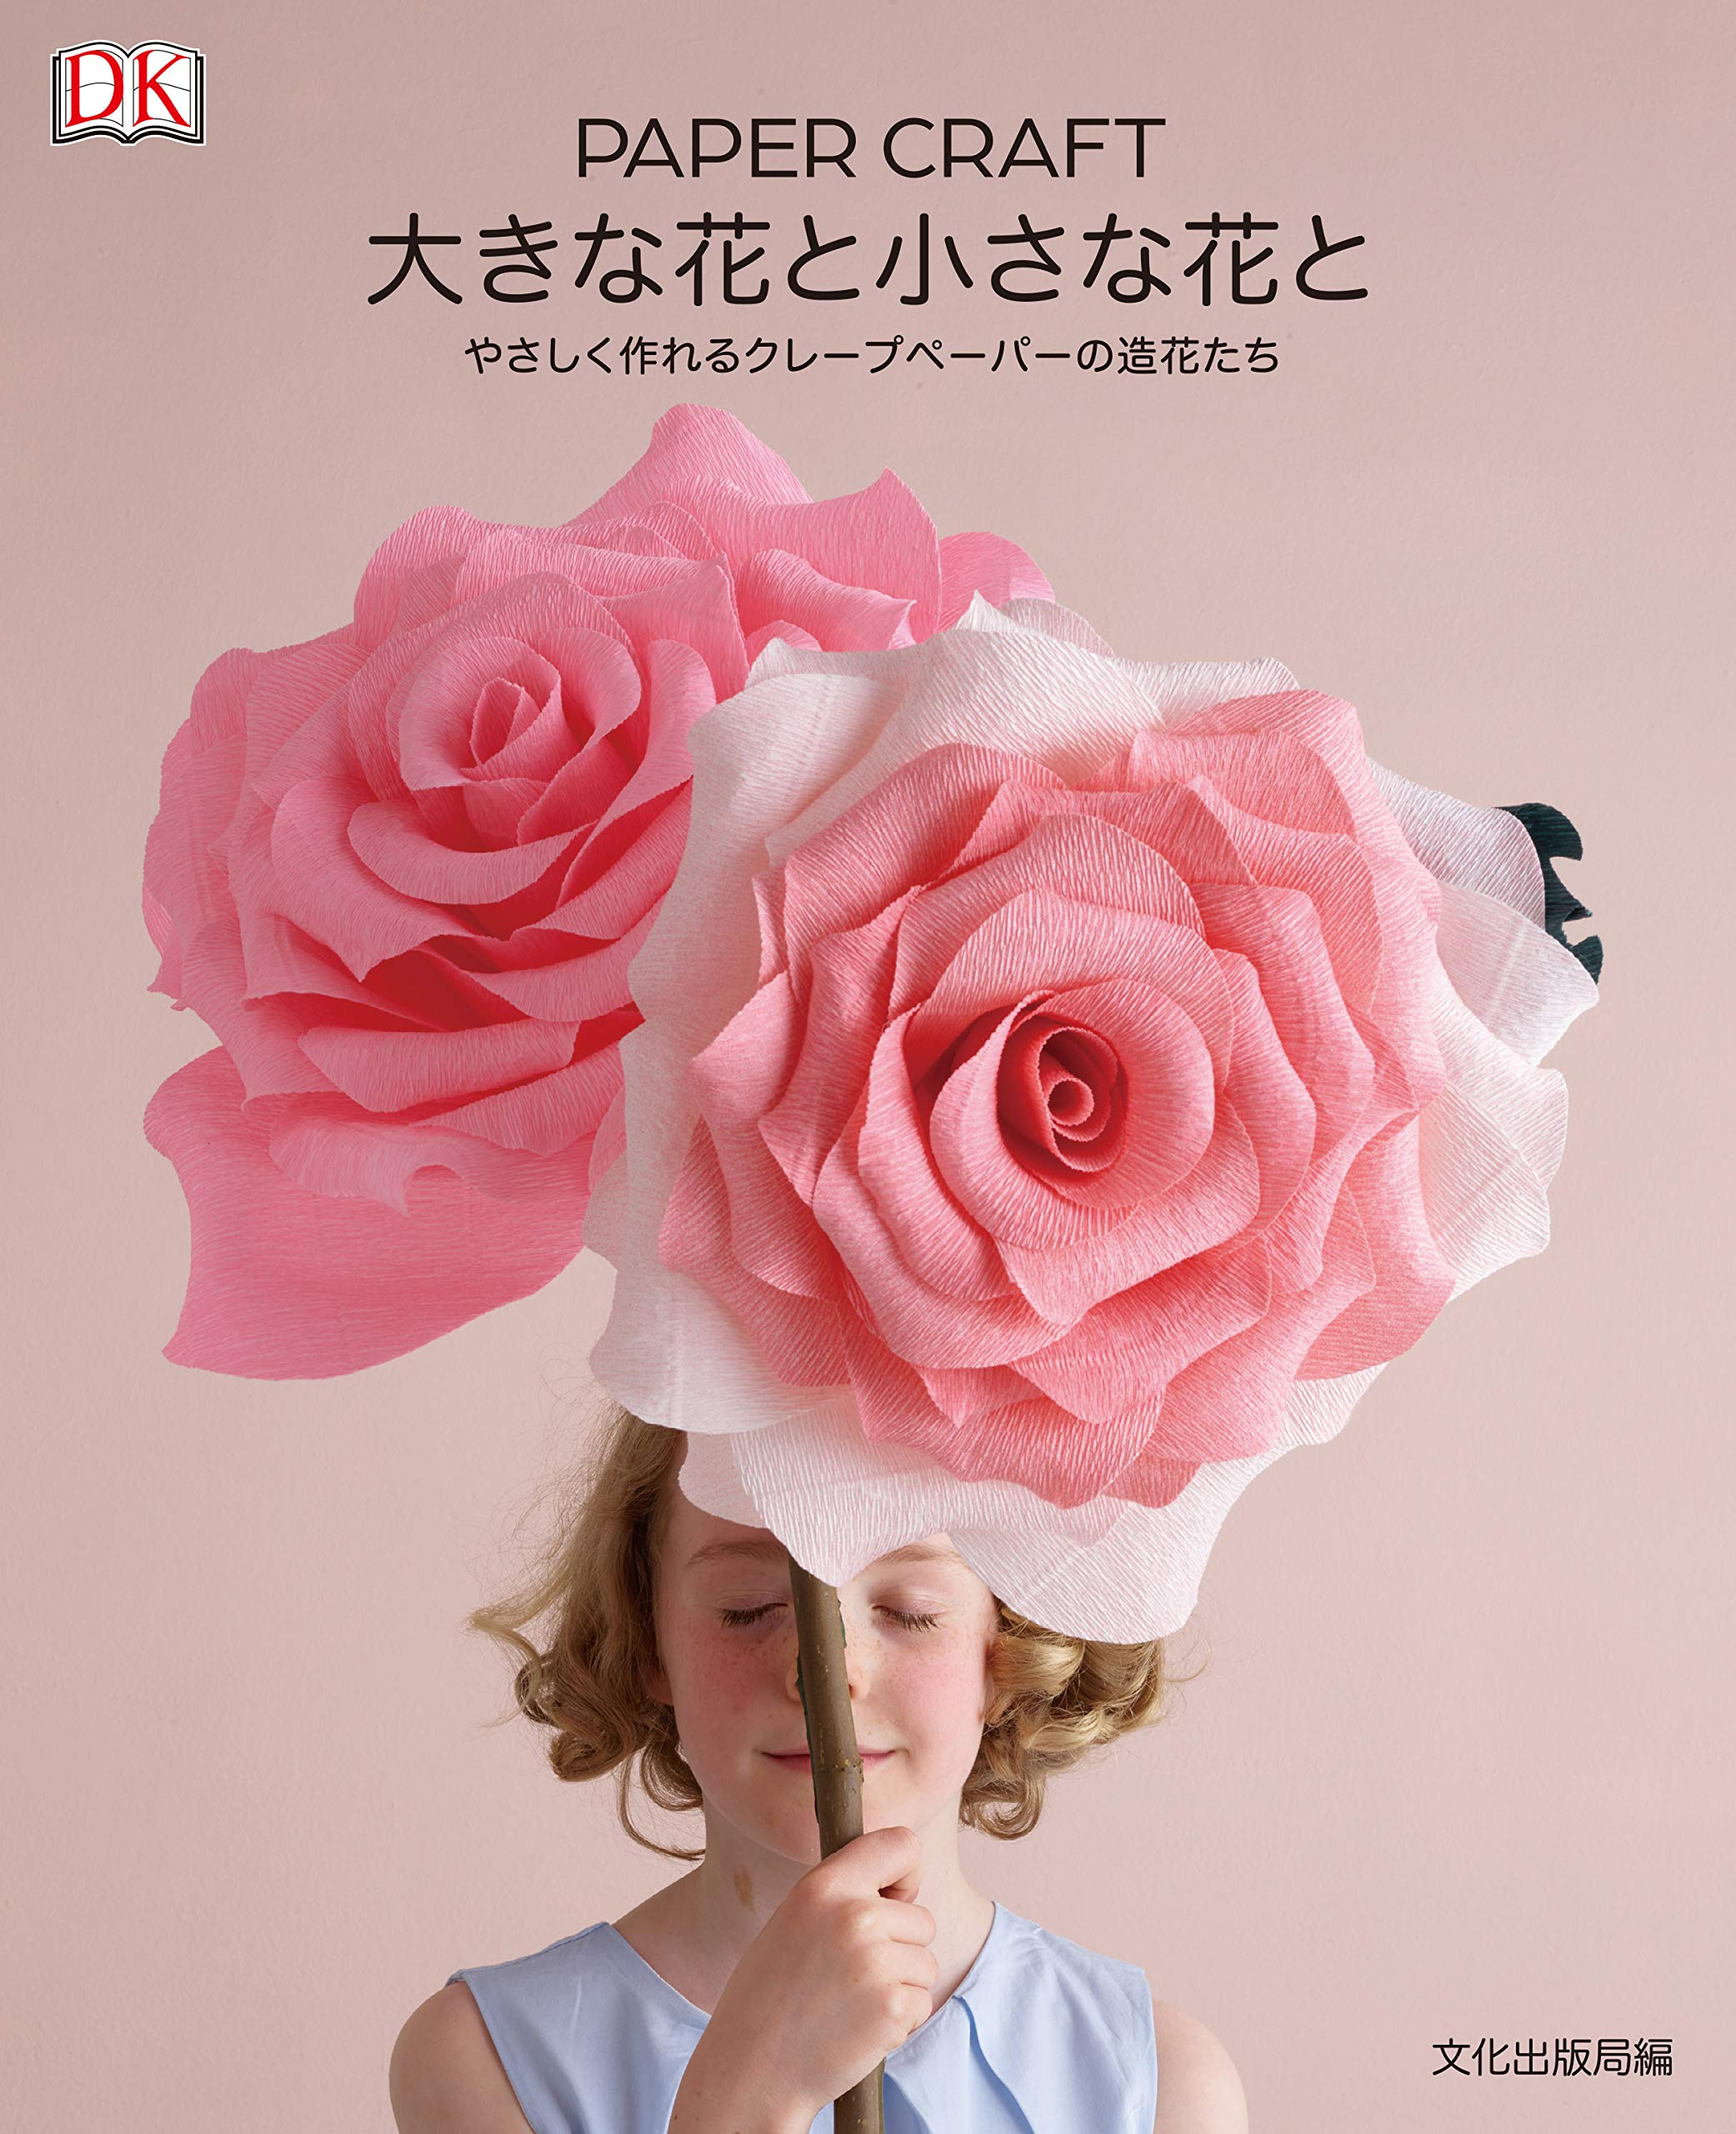 PAPER CRAFT make crepe paper artificial flowers